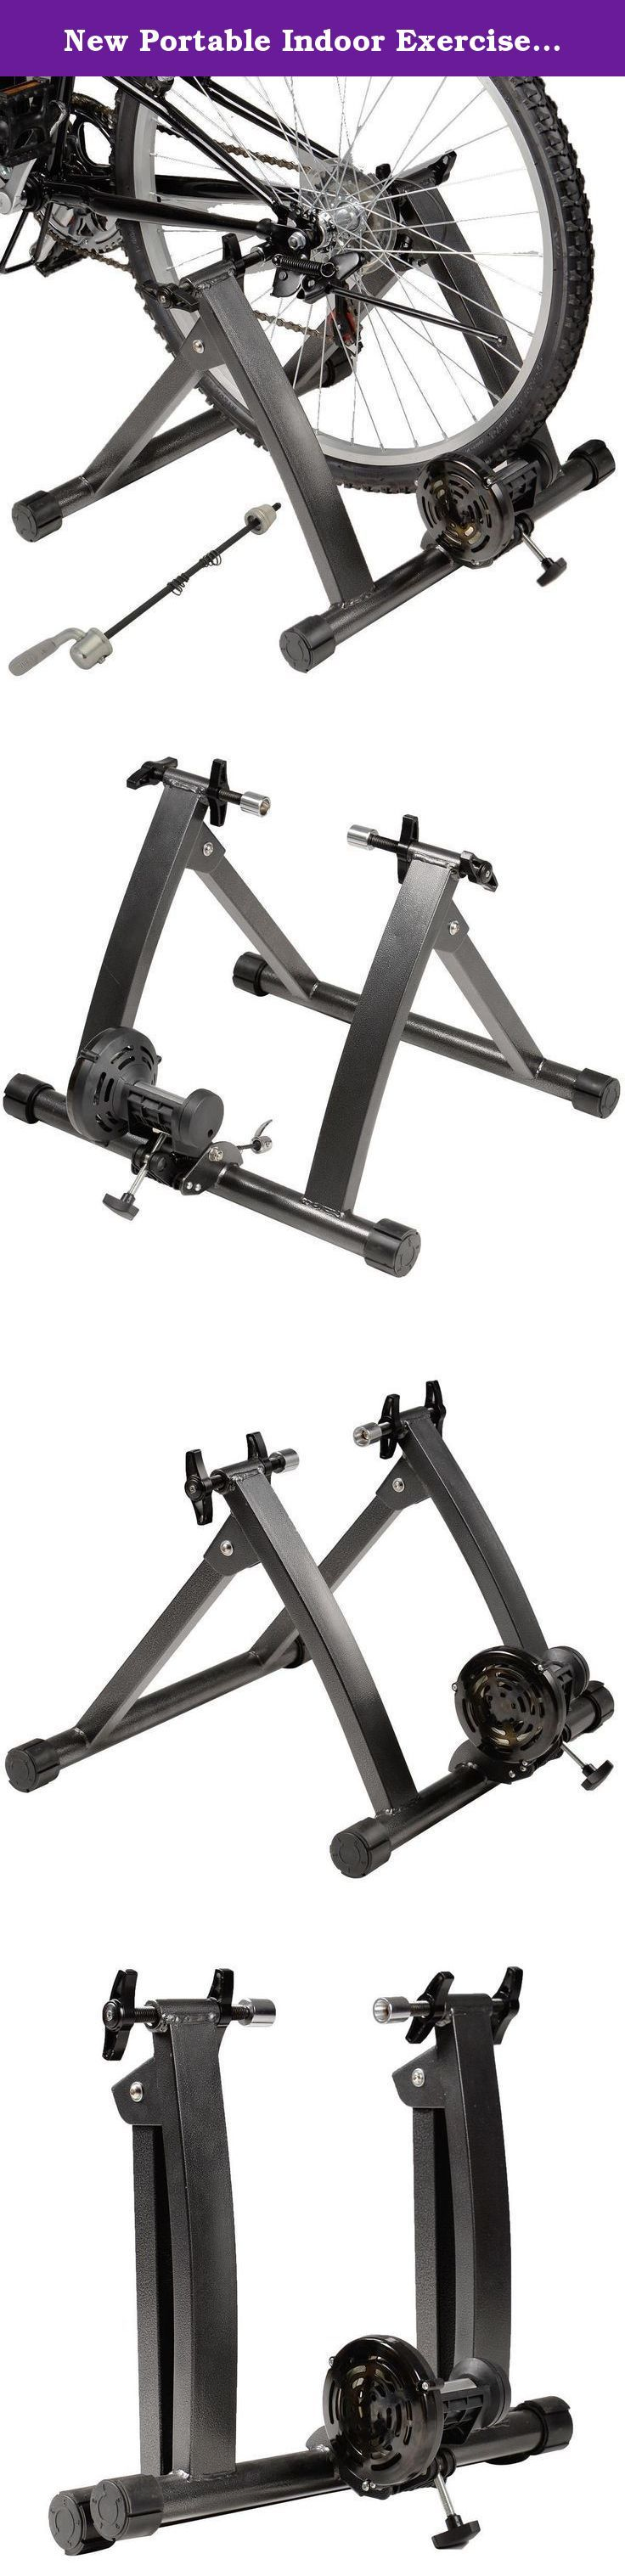 New Portable Indoor Exercise Magnetic Resistance Bicycle Trainer Bike Stand - Easily Clamps Down On Quick Release Or Bolts Onto Your Bike's Rear Wheels - Smooth, Quiet Magnetic Resistance. Discover the Wonderful Bicycle Trainer by Having the New Portable Indoor Exercise Magnetic Resistance Bicycle Trainer Bike Stand - Easily Clamps Down On Quick Release Or Bolts Onto Your Bike's Rear Wheels - Smooth, Quiet Magnetic Resistance Description: - Wanna enjoy bicycle training while it's too cold...